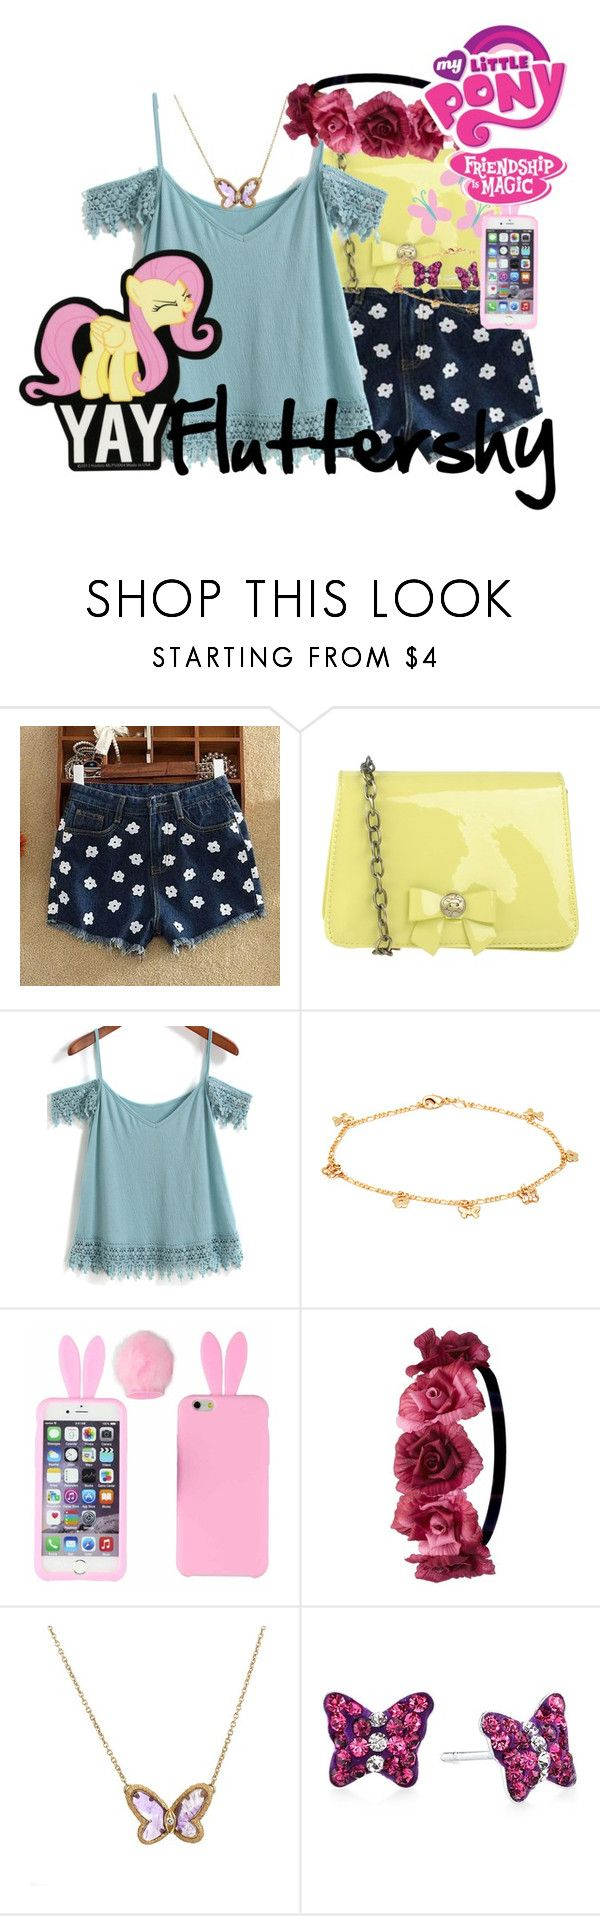 """My Little Pony - Fluttershy"" by didneyworl ❤ liked on Polyvore featuring SIDO FASHION, Darling, Cutie, Sevil Designs, Charlotte Russe, Van Cleef & Arpels, Unwritten, My Little Pony, women's clothing and women"